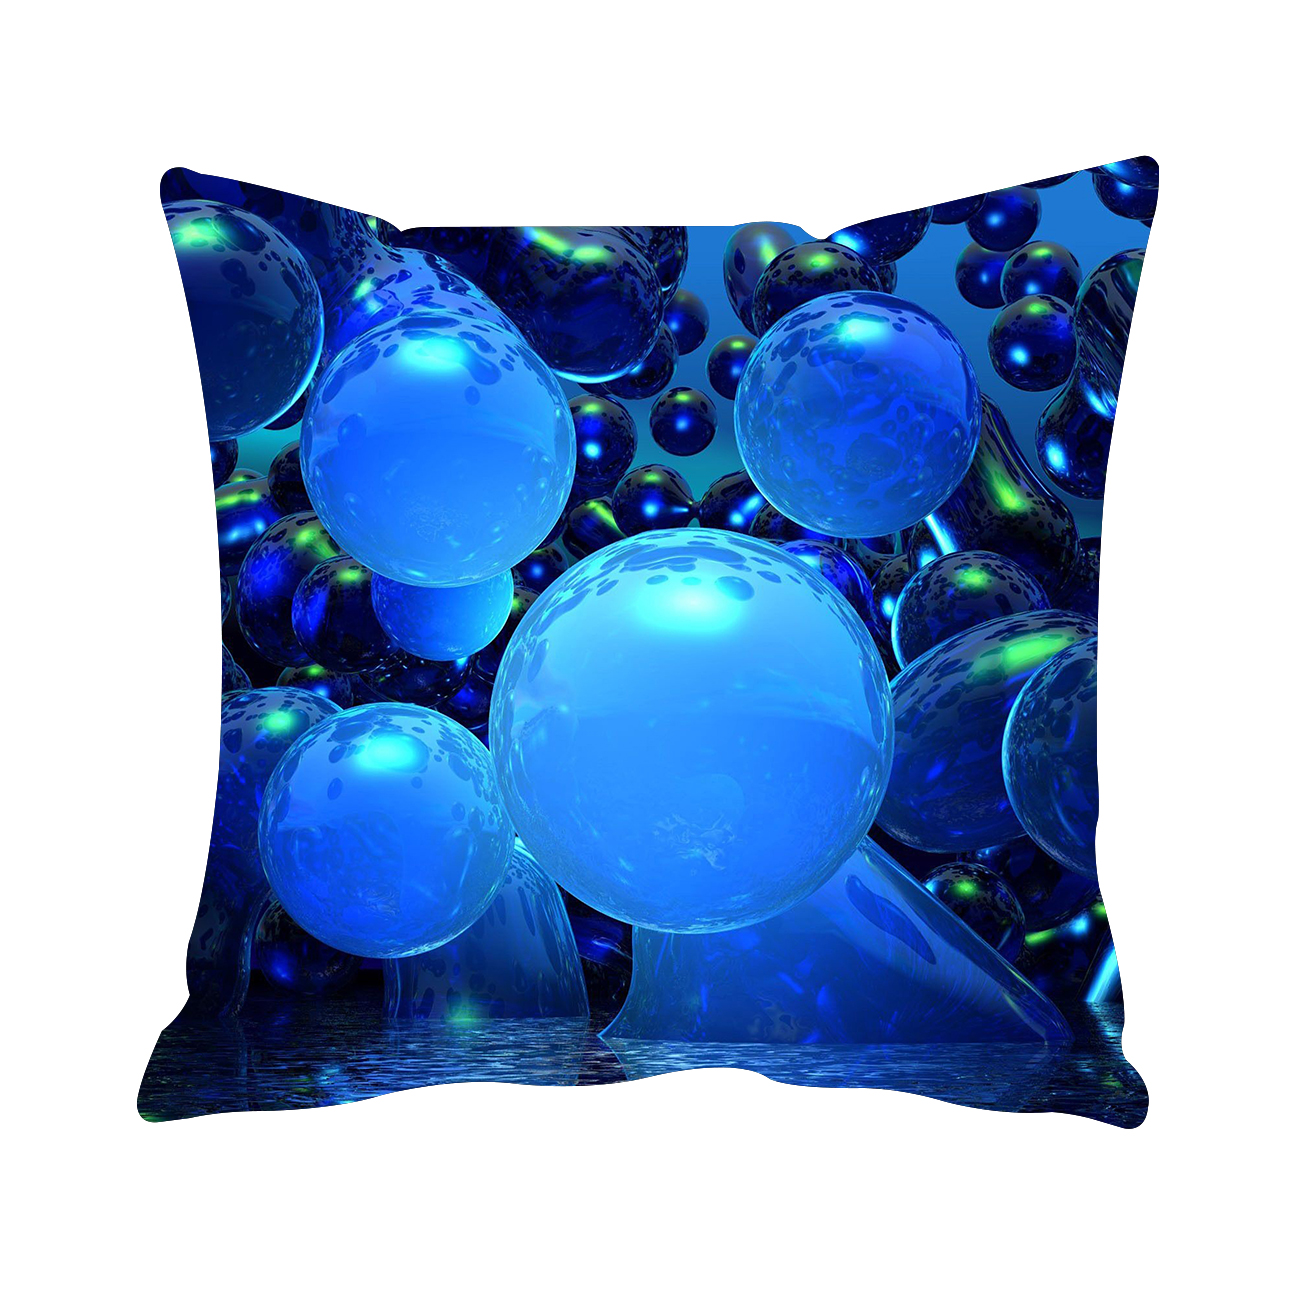 3D Balloon Pattern Customized Cotton Linen Square Throw Pillow Case Decorative Cushion Cover Pillowcase 18x18 Inch(45*45cm)(China (Mainland))